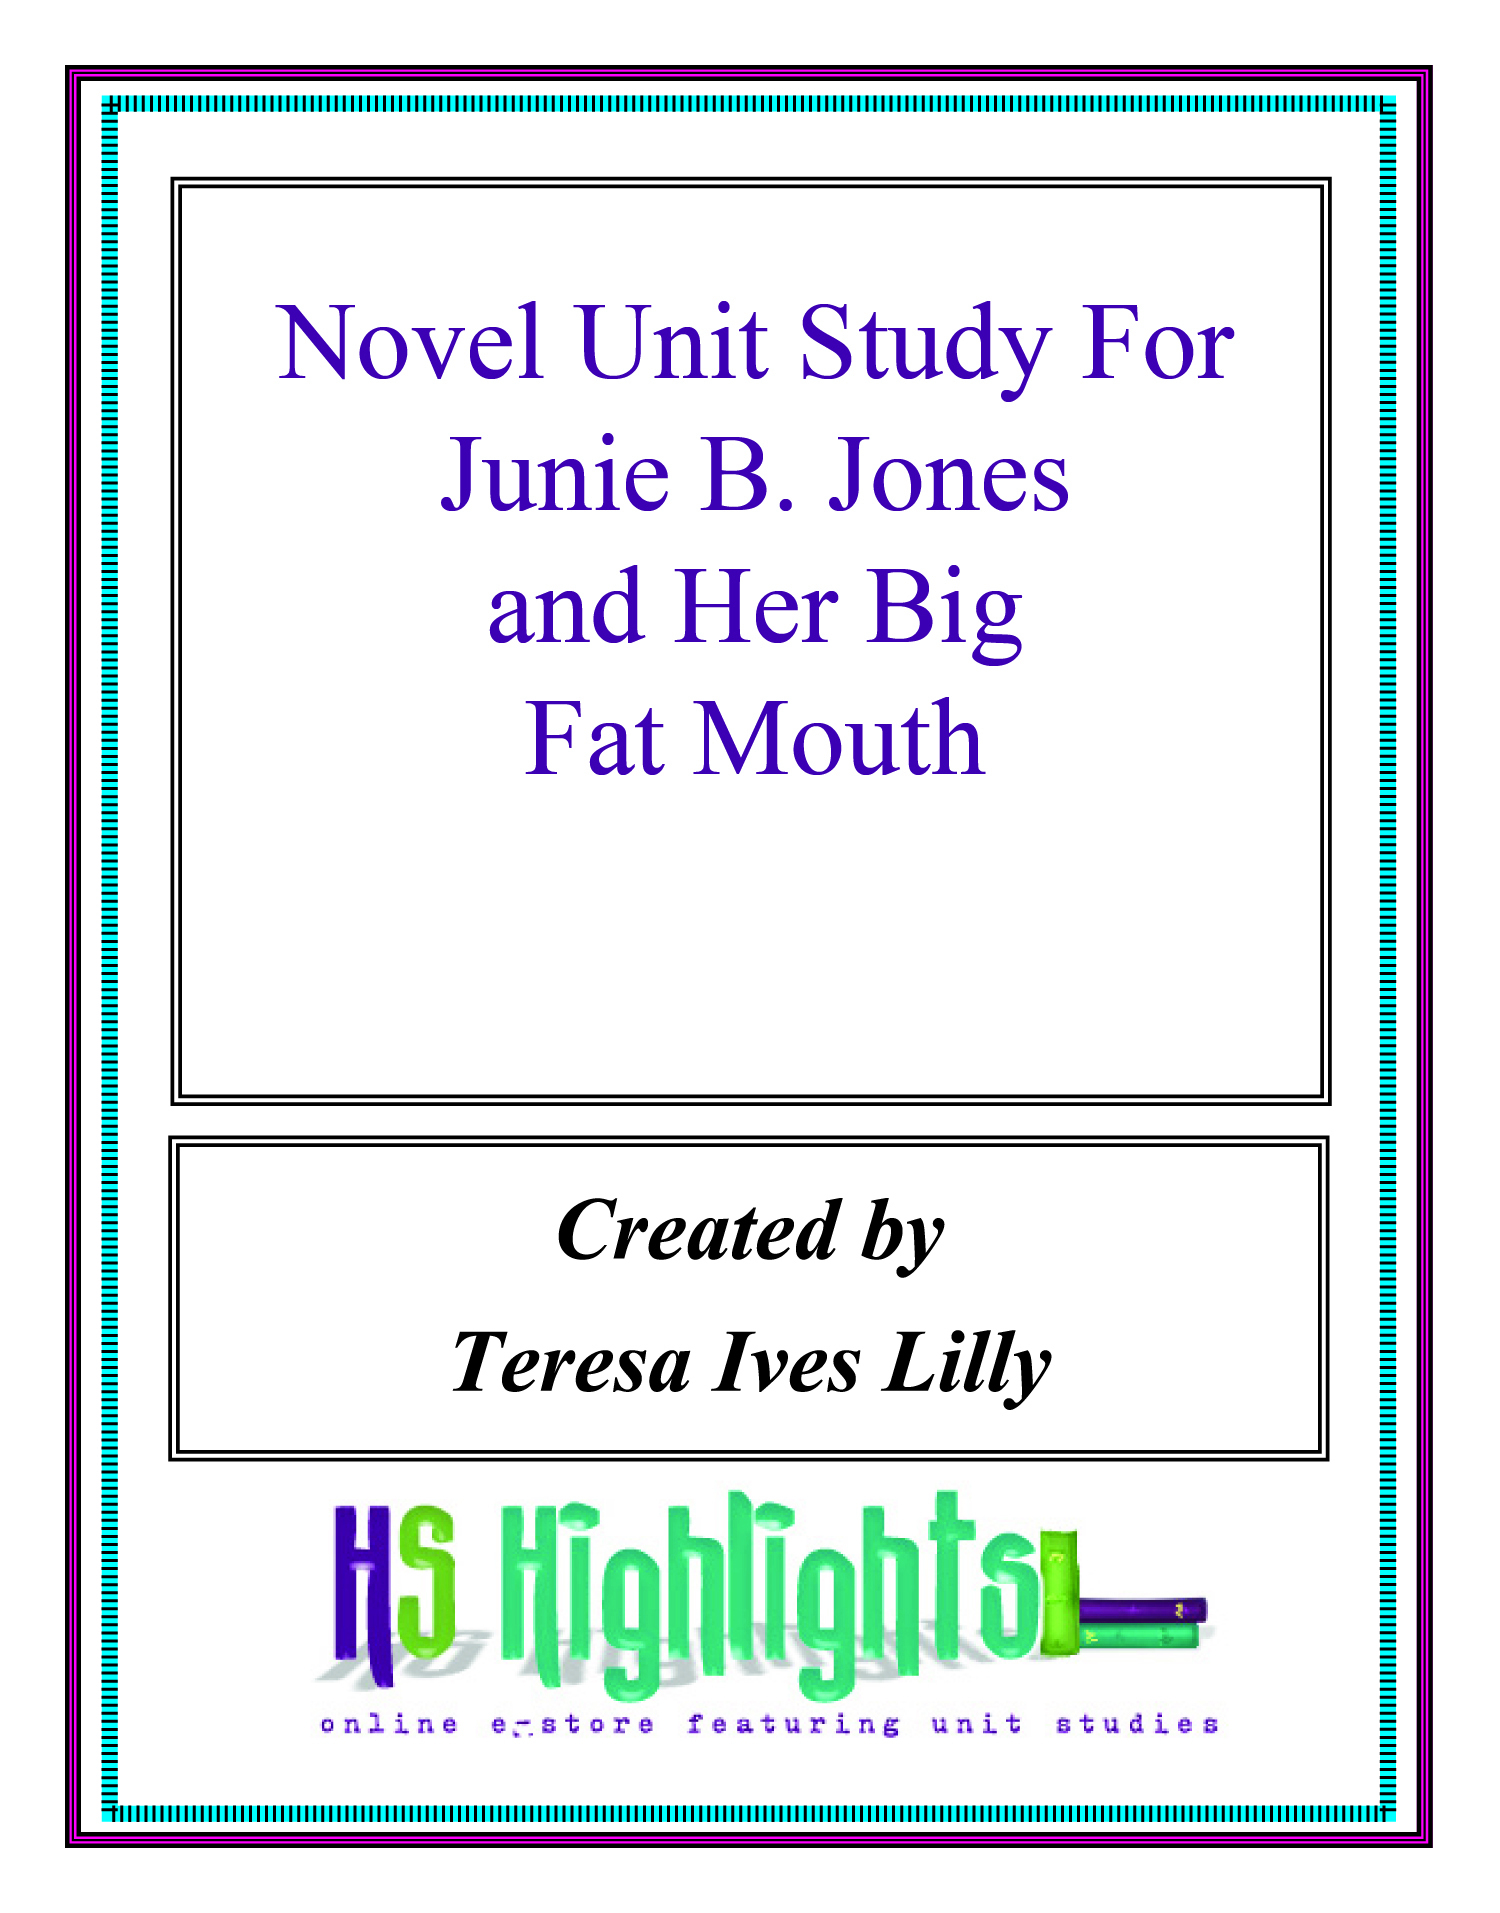 Novel Unit Study For Junie B. Jones and Her Big Fat Mouth